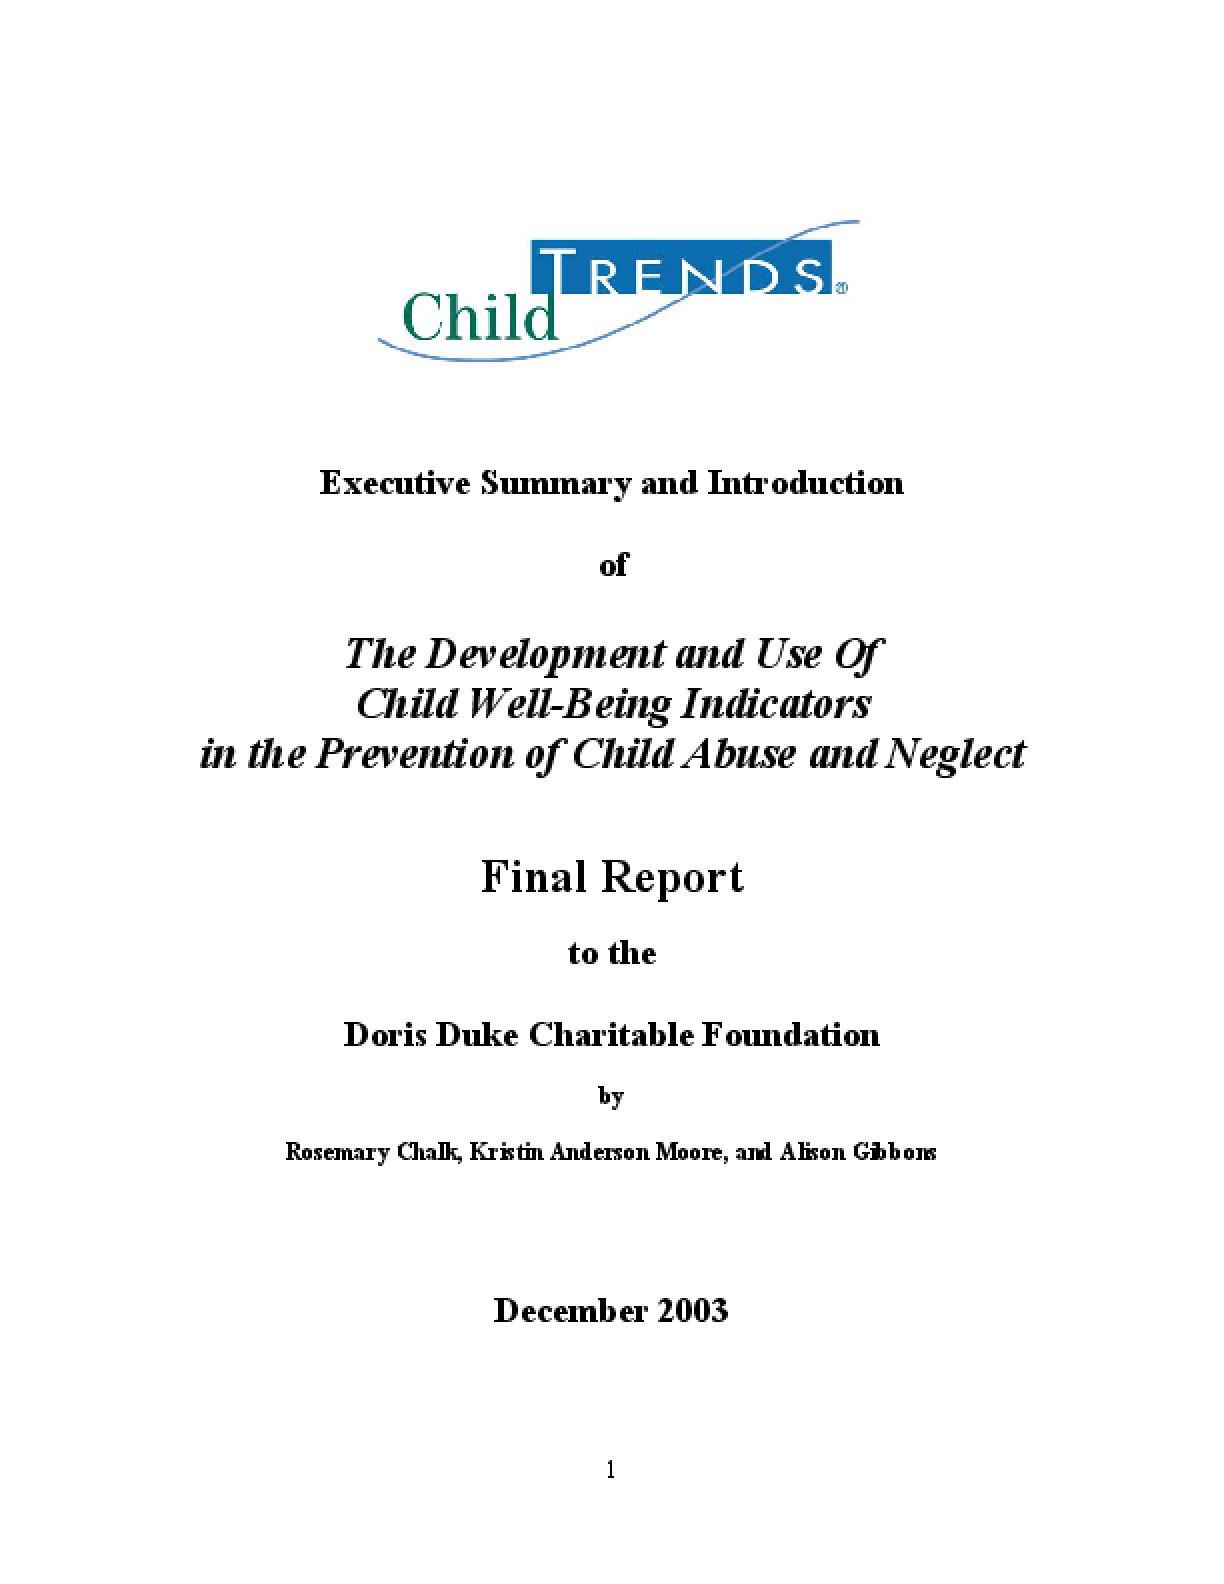 The Development and Use of Child Well-Being Indicators in the Prevention of Child Abuse and Neglect